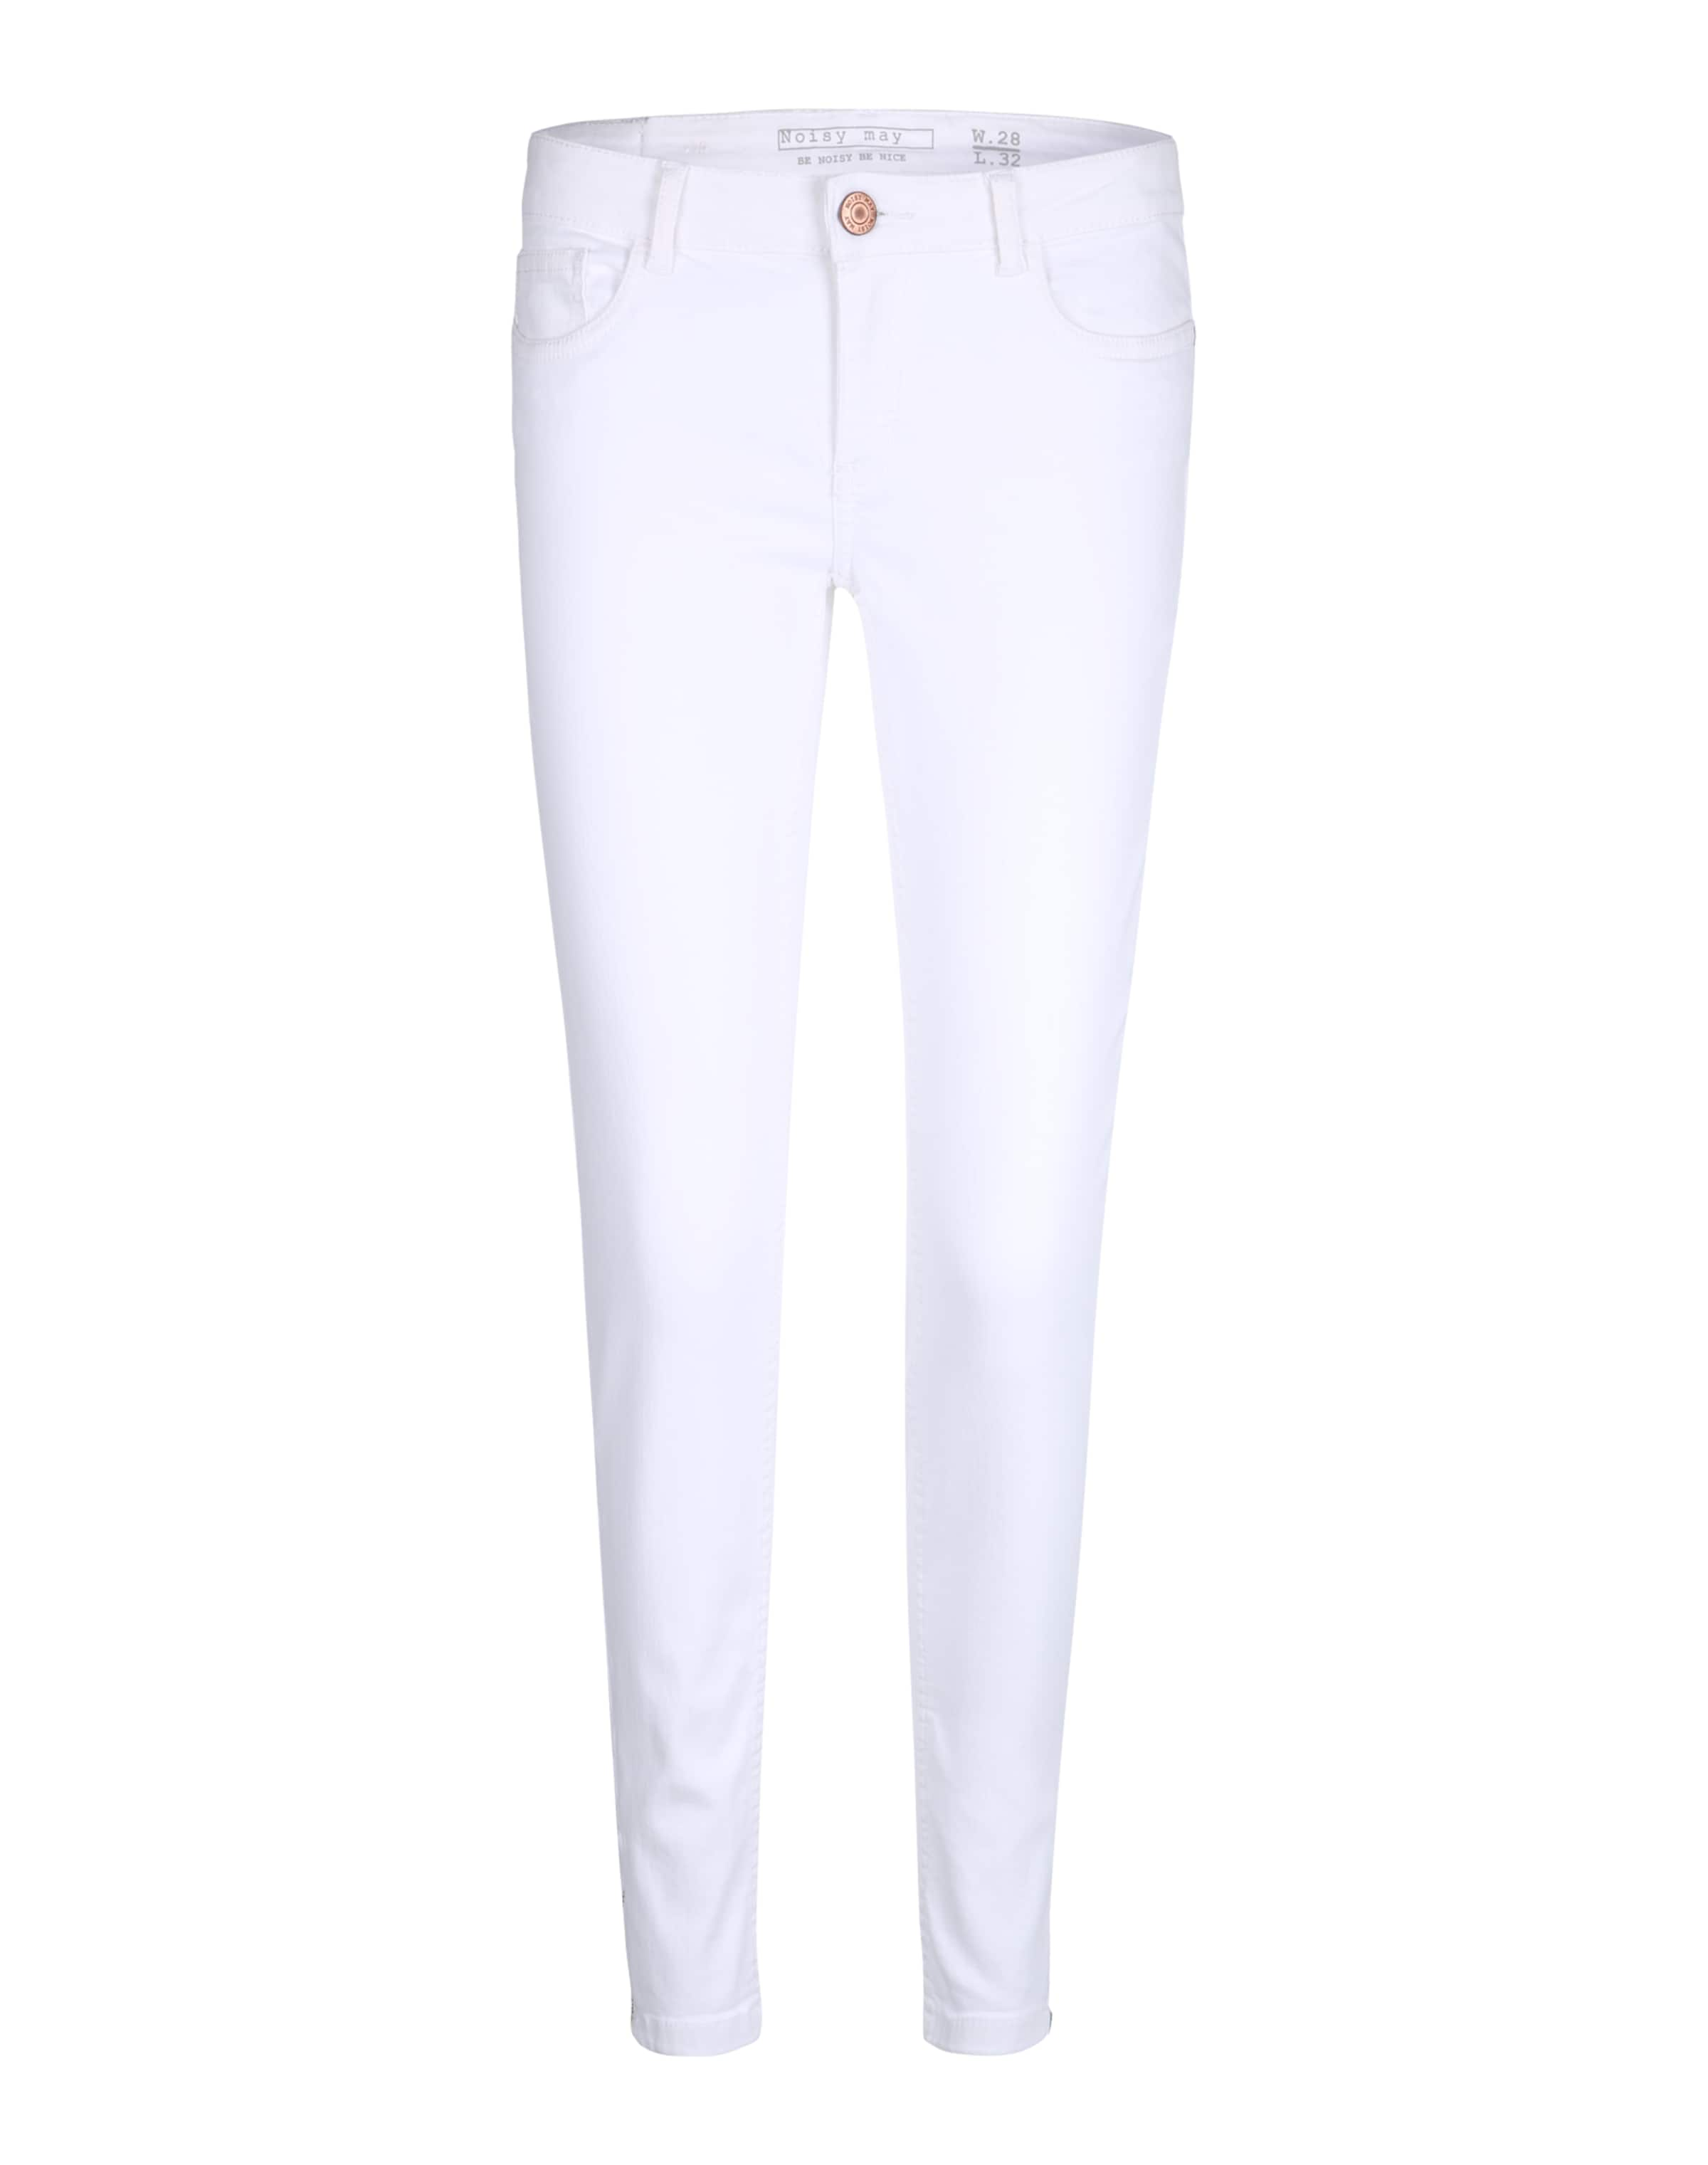 Noisy In Weiß May 'nmeve' Jeans Skinny 4qcRAS5L3j